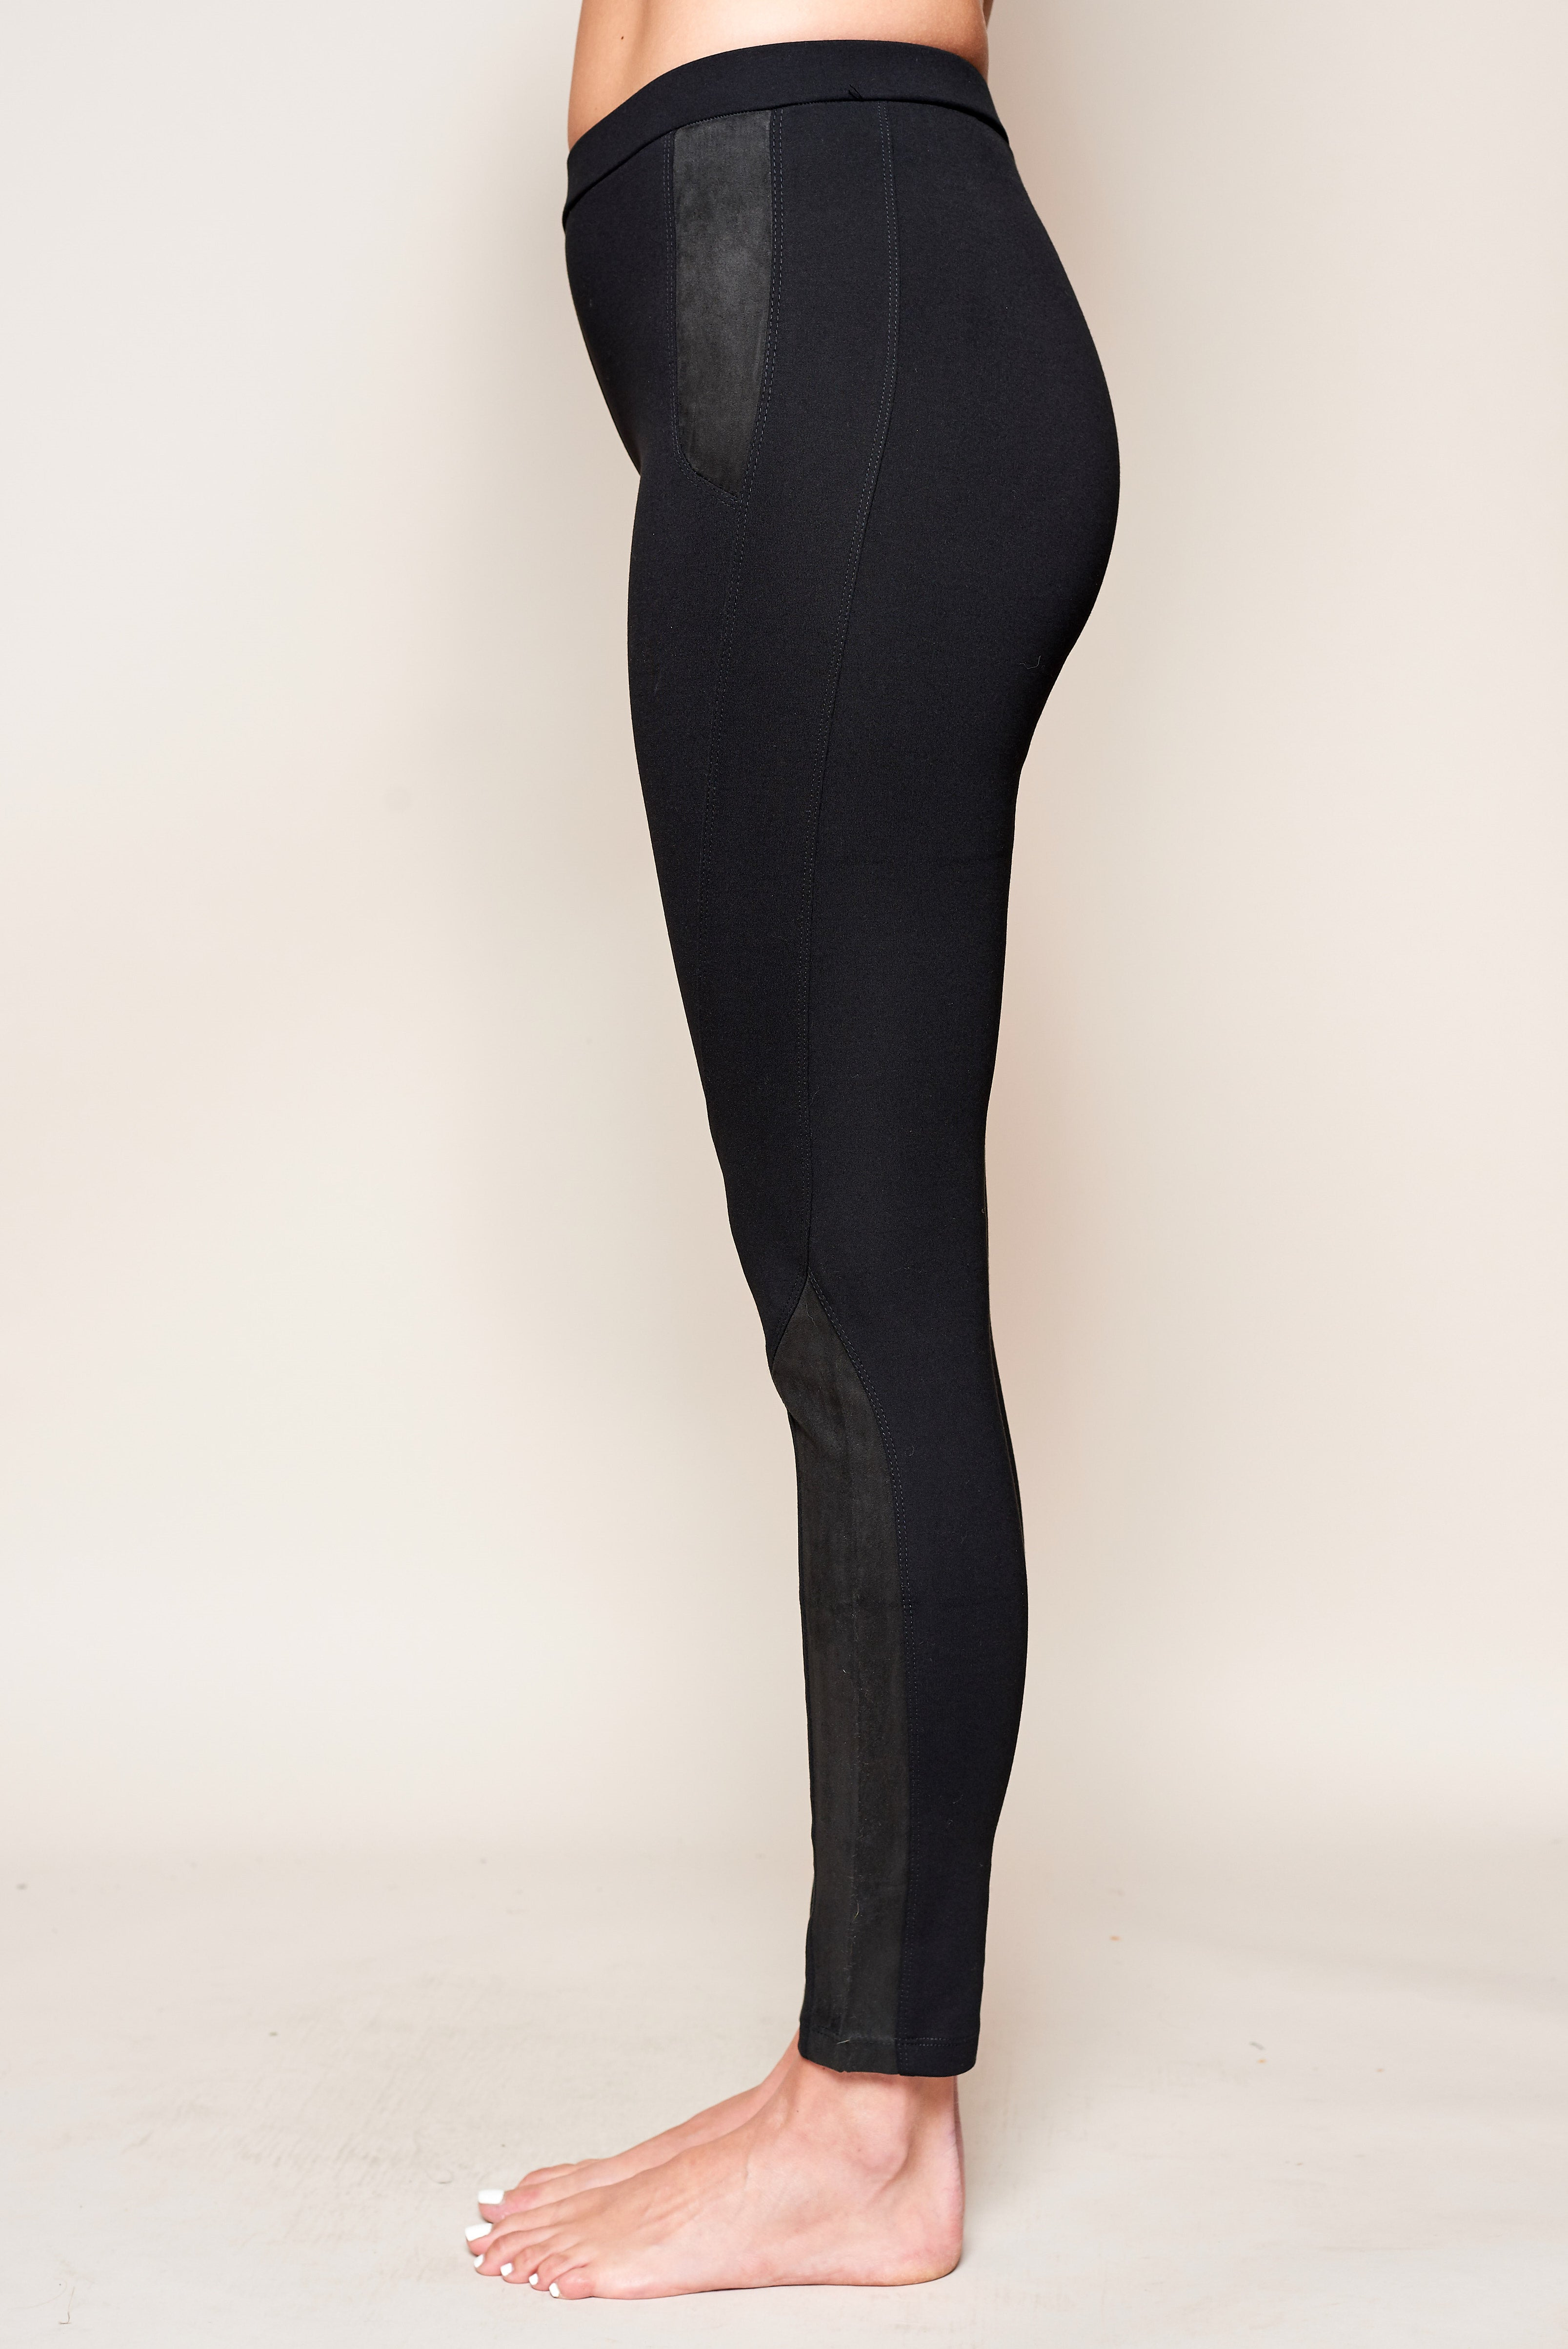 Lose 10 Lbs Leggings Suede Inset - Jacqueline B Clothing